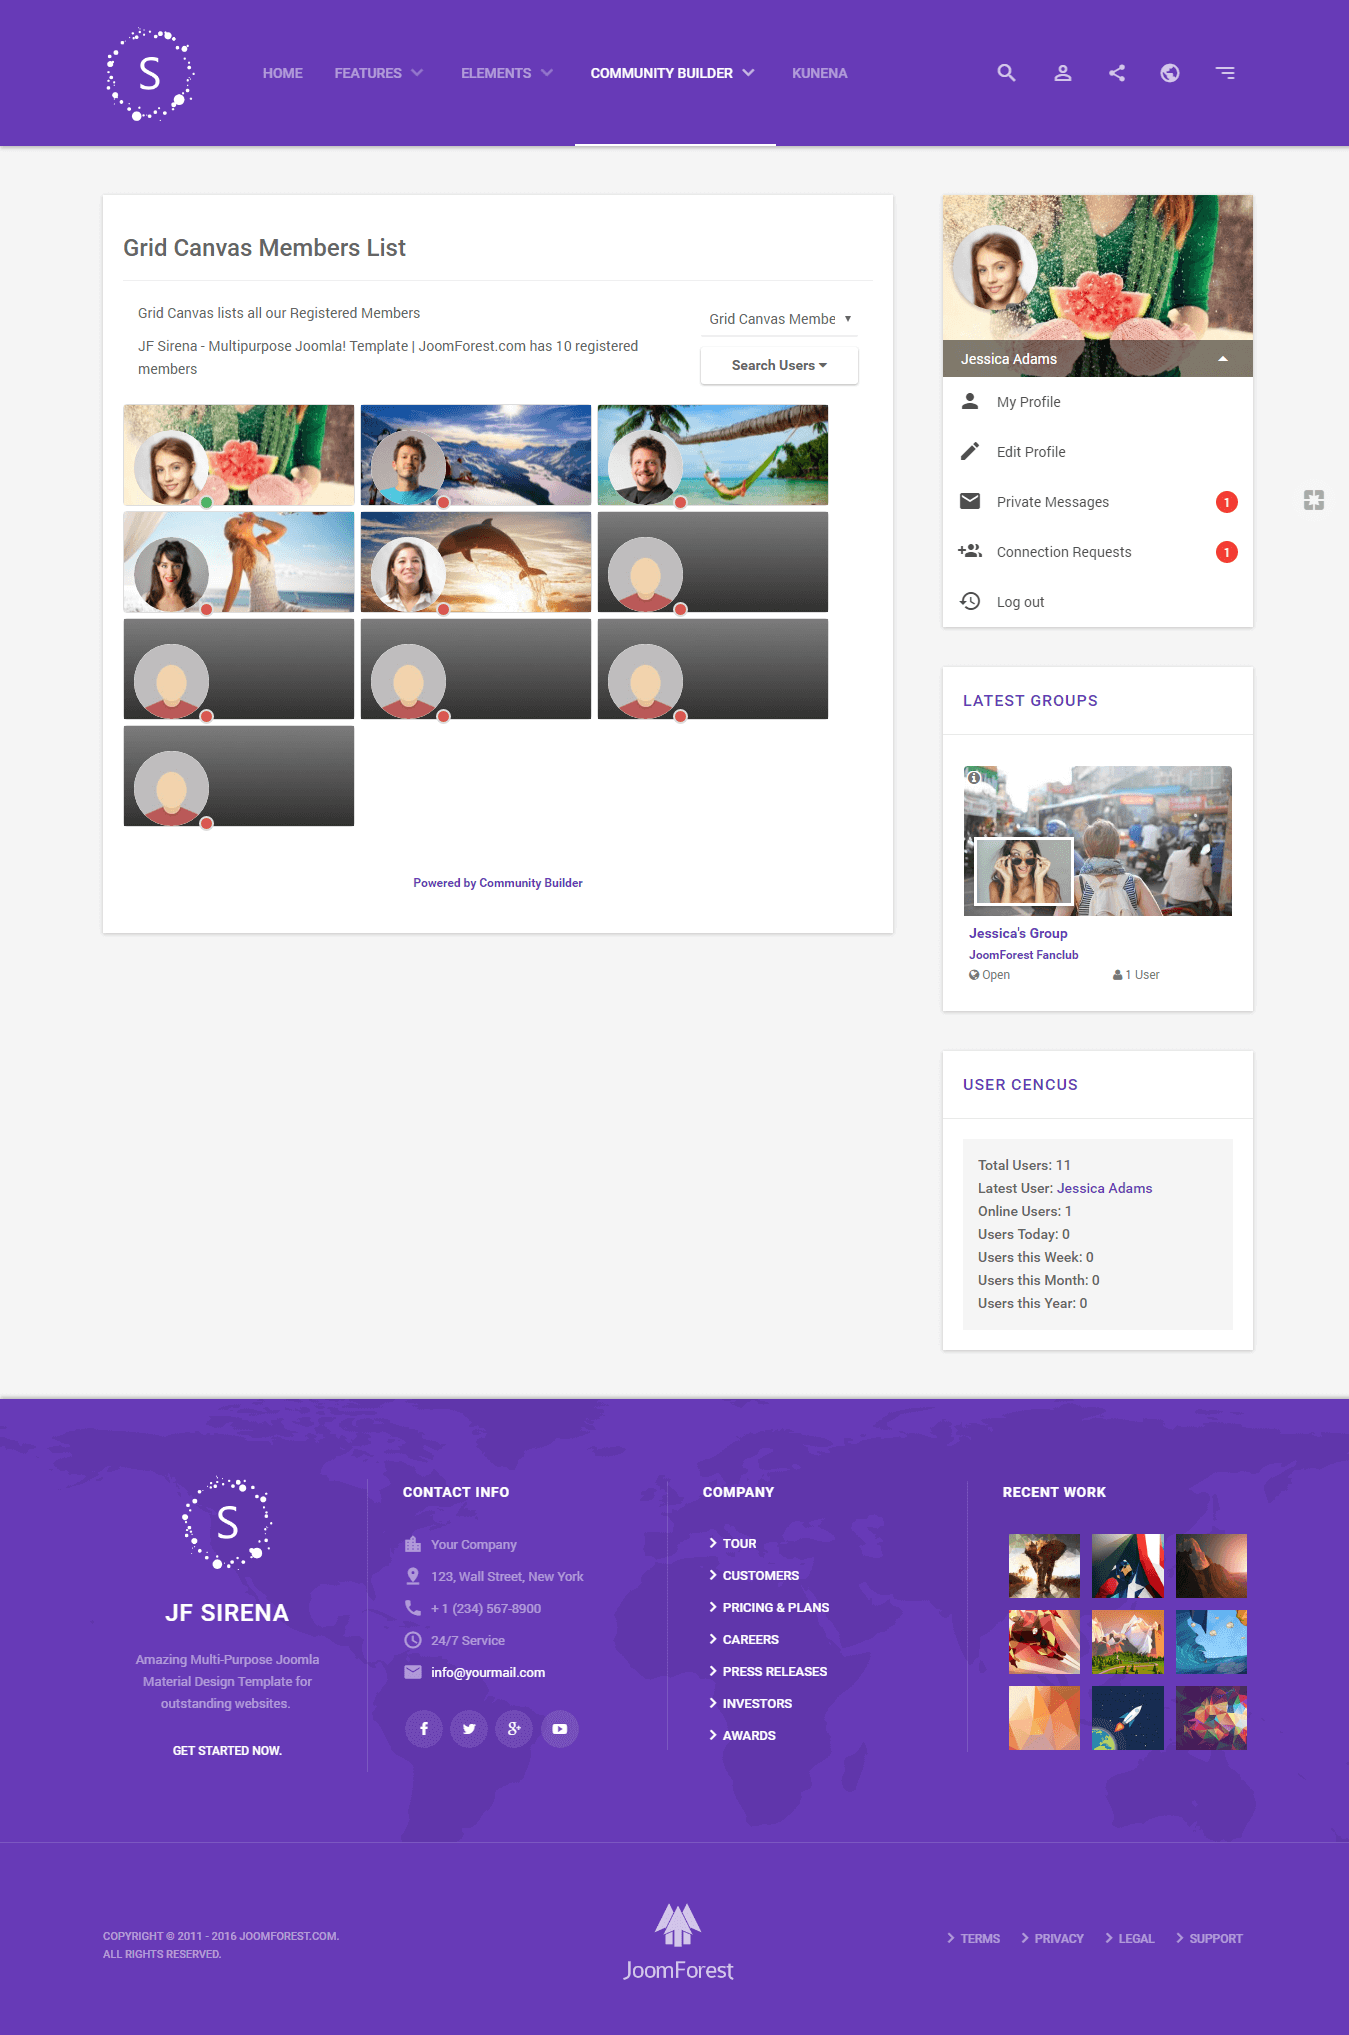 Sirena material design premium joomla template by joomforest cb grid canvas members listg pronofoot35fo Images